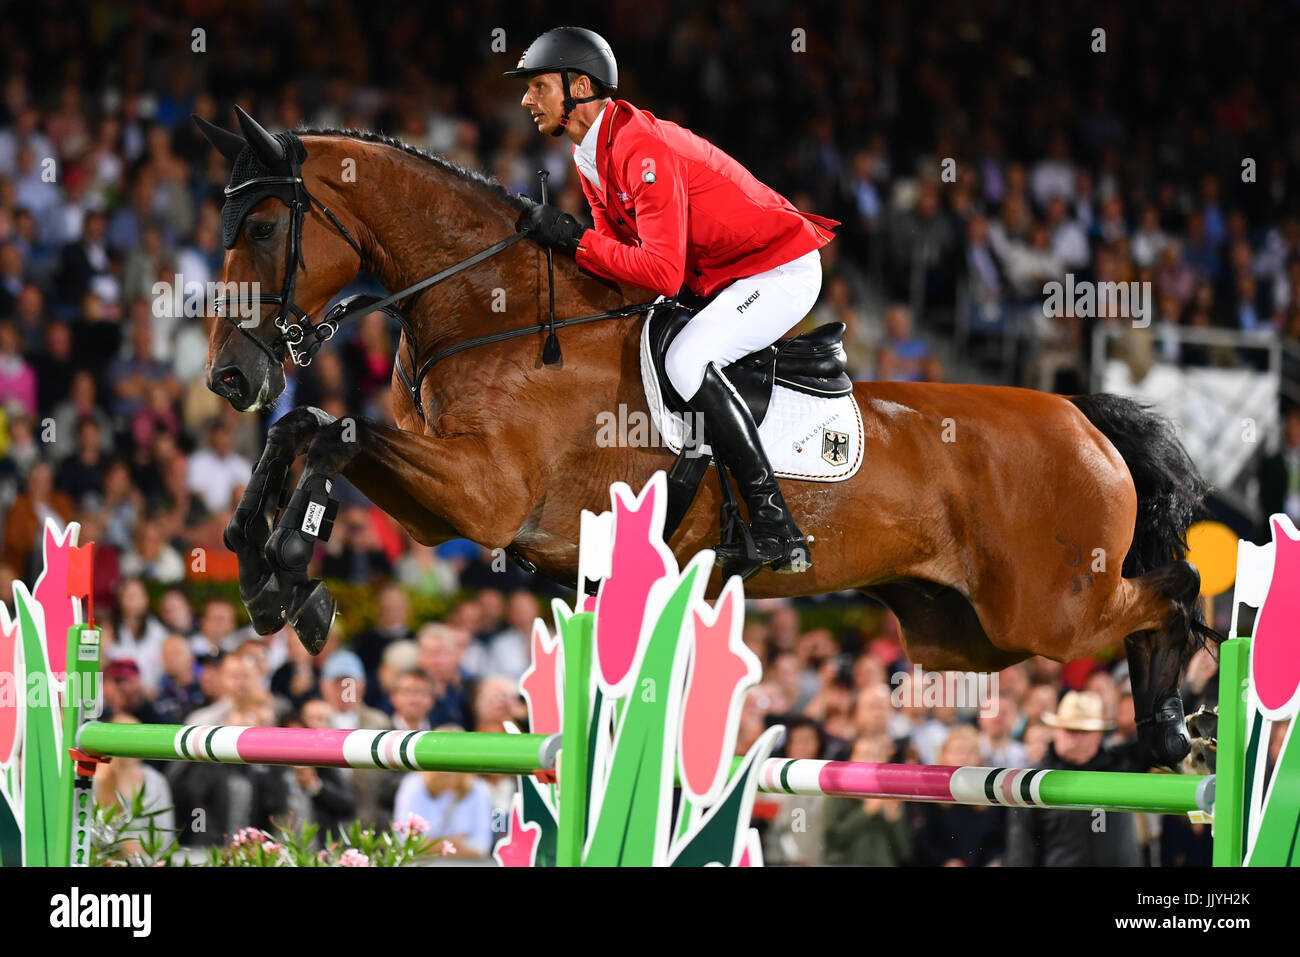 Aachen, Germany. 20th July, 2017. German show jumper Marco Kutscher riding the horse Clenur jumps over an obstacle Stock Photo